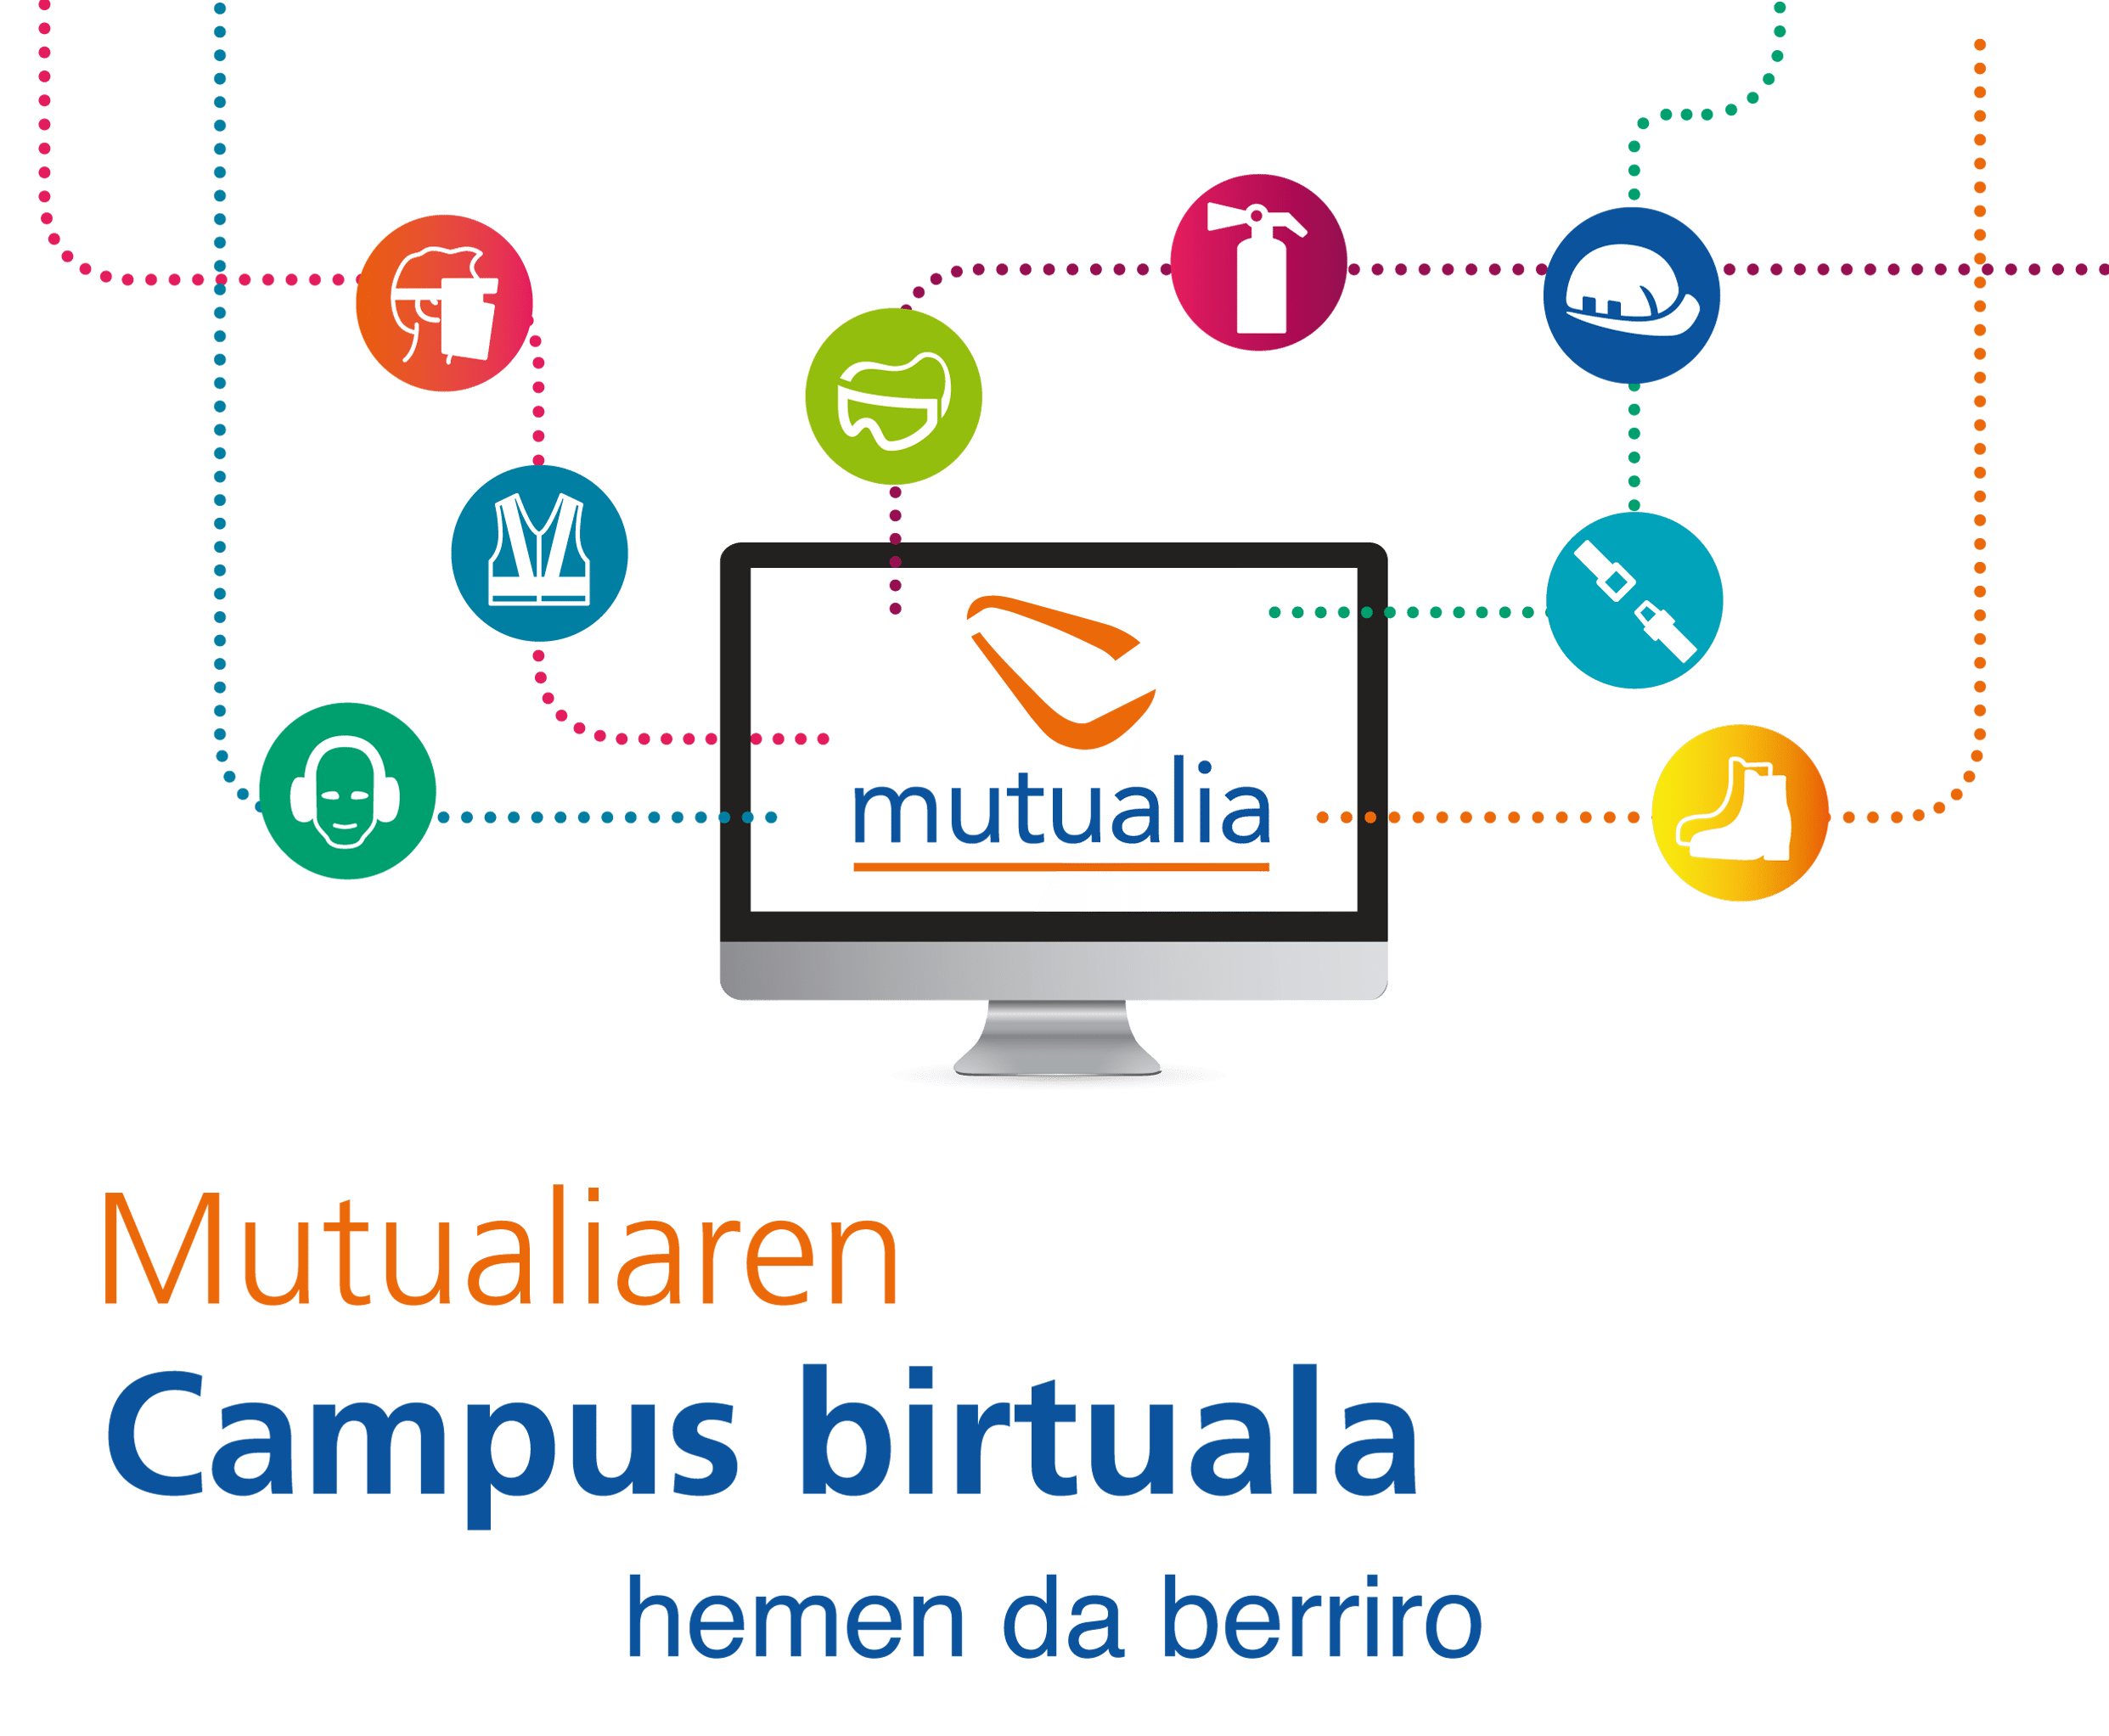 Mutualiaren Campus Birtuala